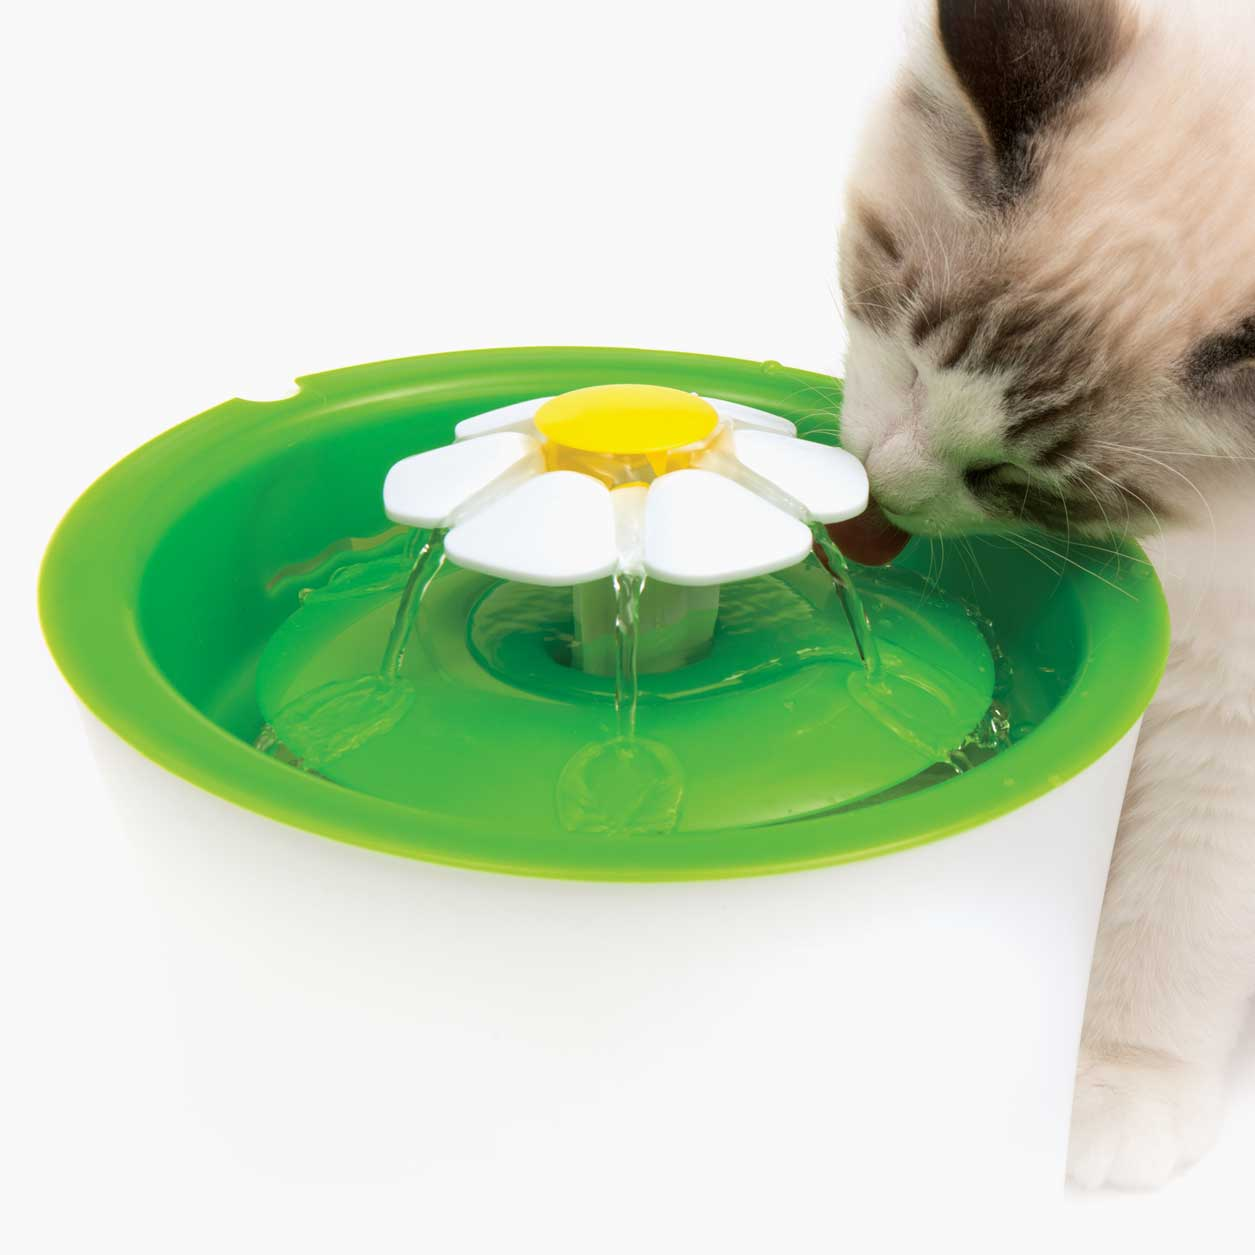 Cat drinking filtered water from the Catit Flower Fountain